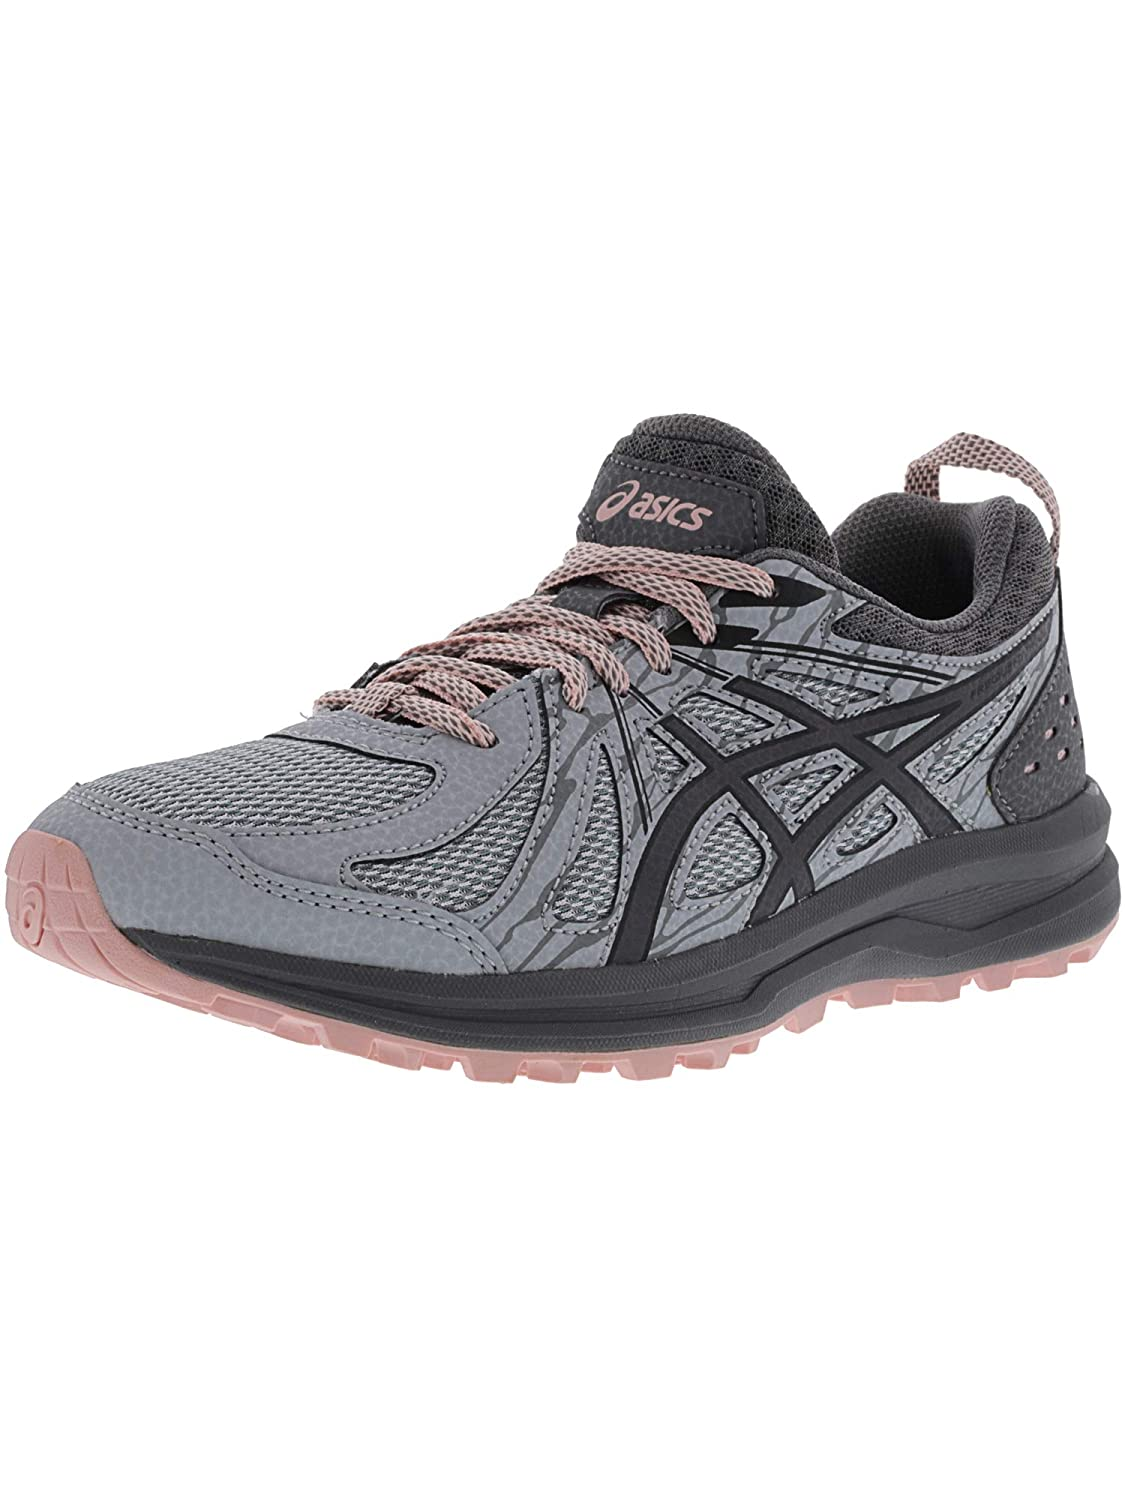 ASICS Women s Frequent Trail Running Shoe, Mid Grey Carbon, 8